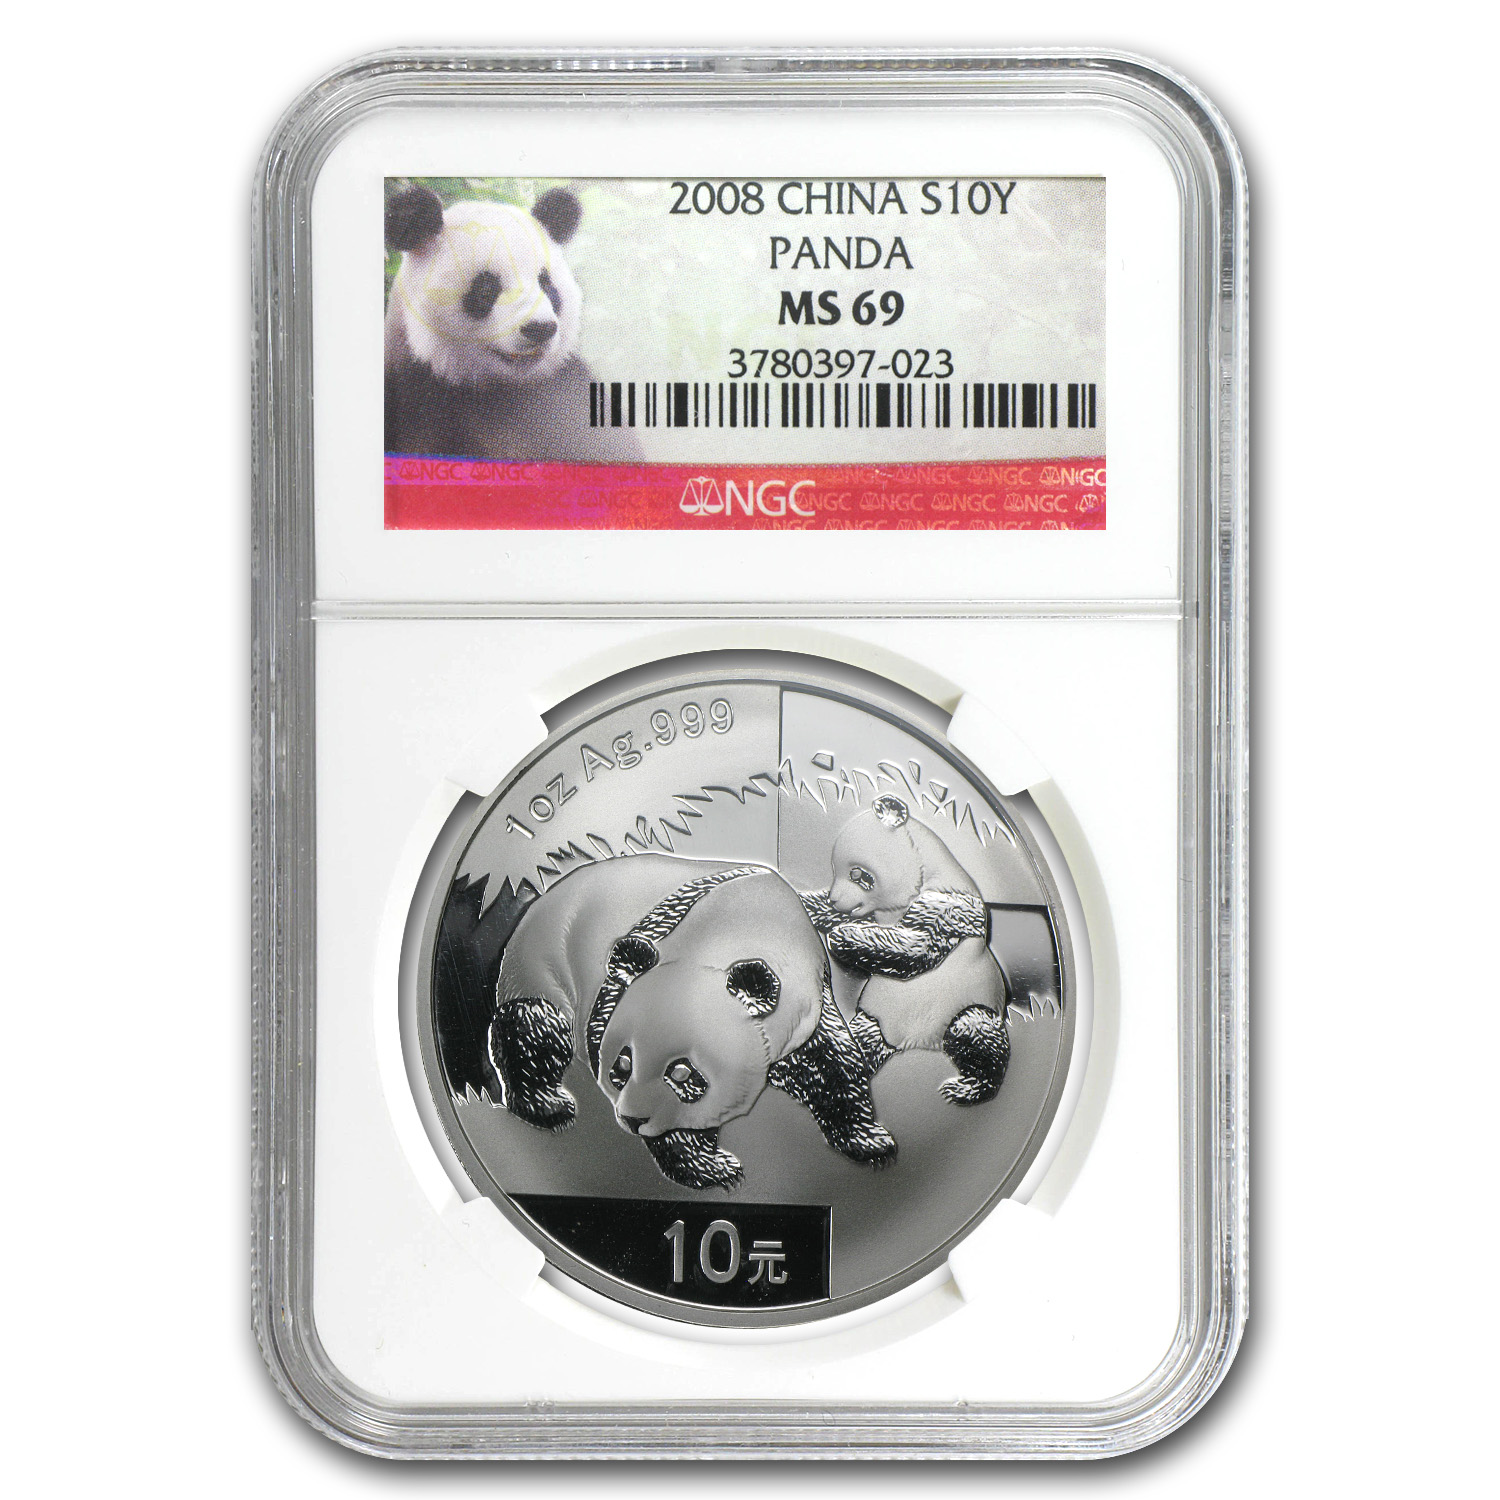 2008 China 1 oz Silver Panda MS-69 NGC